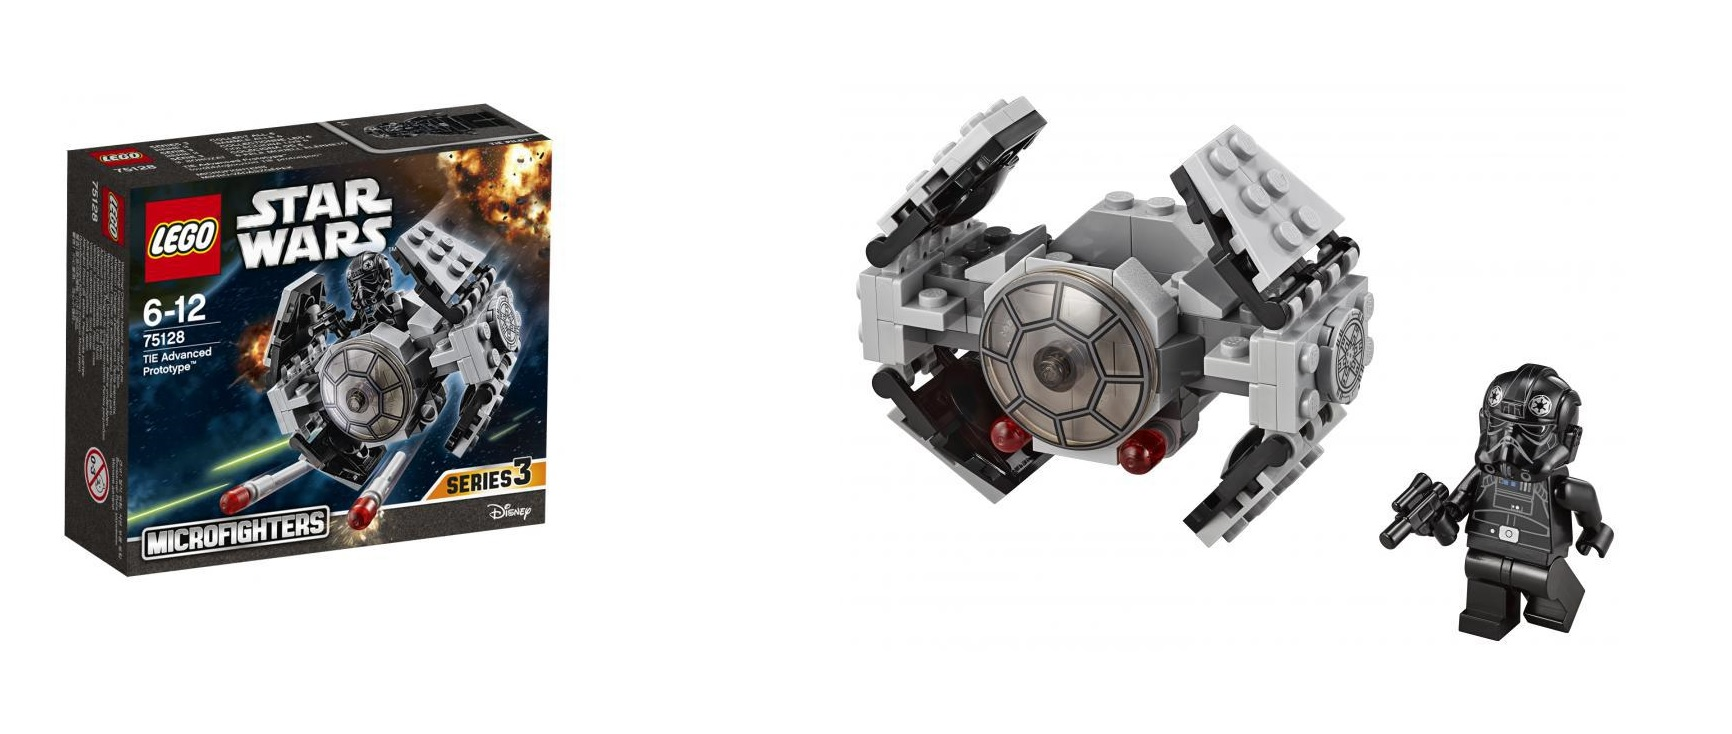 8 Lego Starwars 75128 1bc0c021 Lego Star Wars 75128  : LEGO Star Wars 75128 TIE Advanced Prototype Microfighters Series 3 Toysnbricks from hargapass.com size 1732 x 734 jpeg 216kB